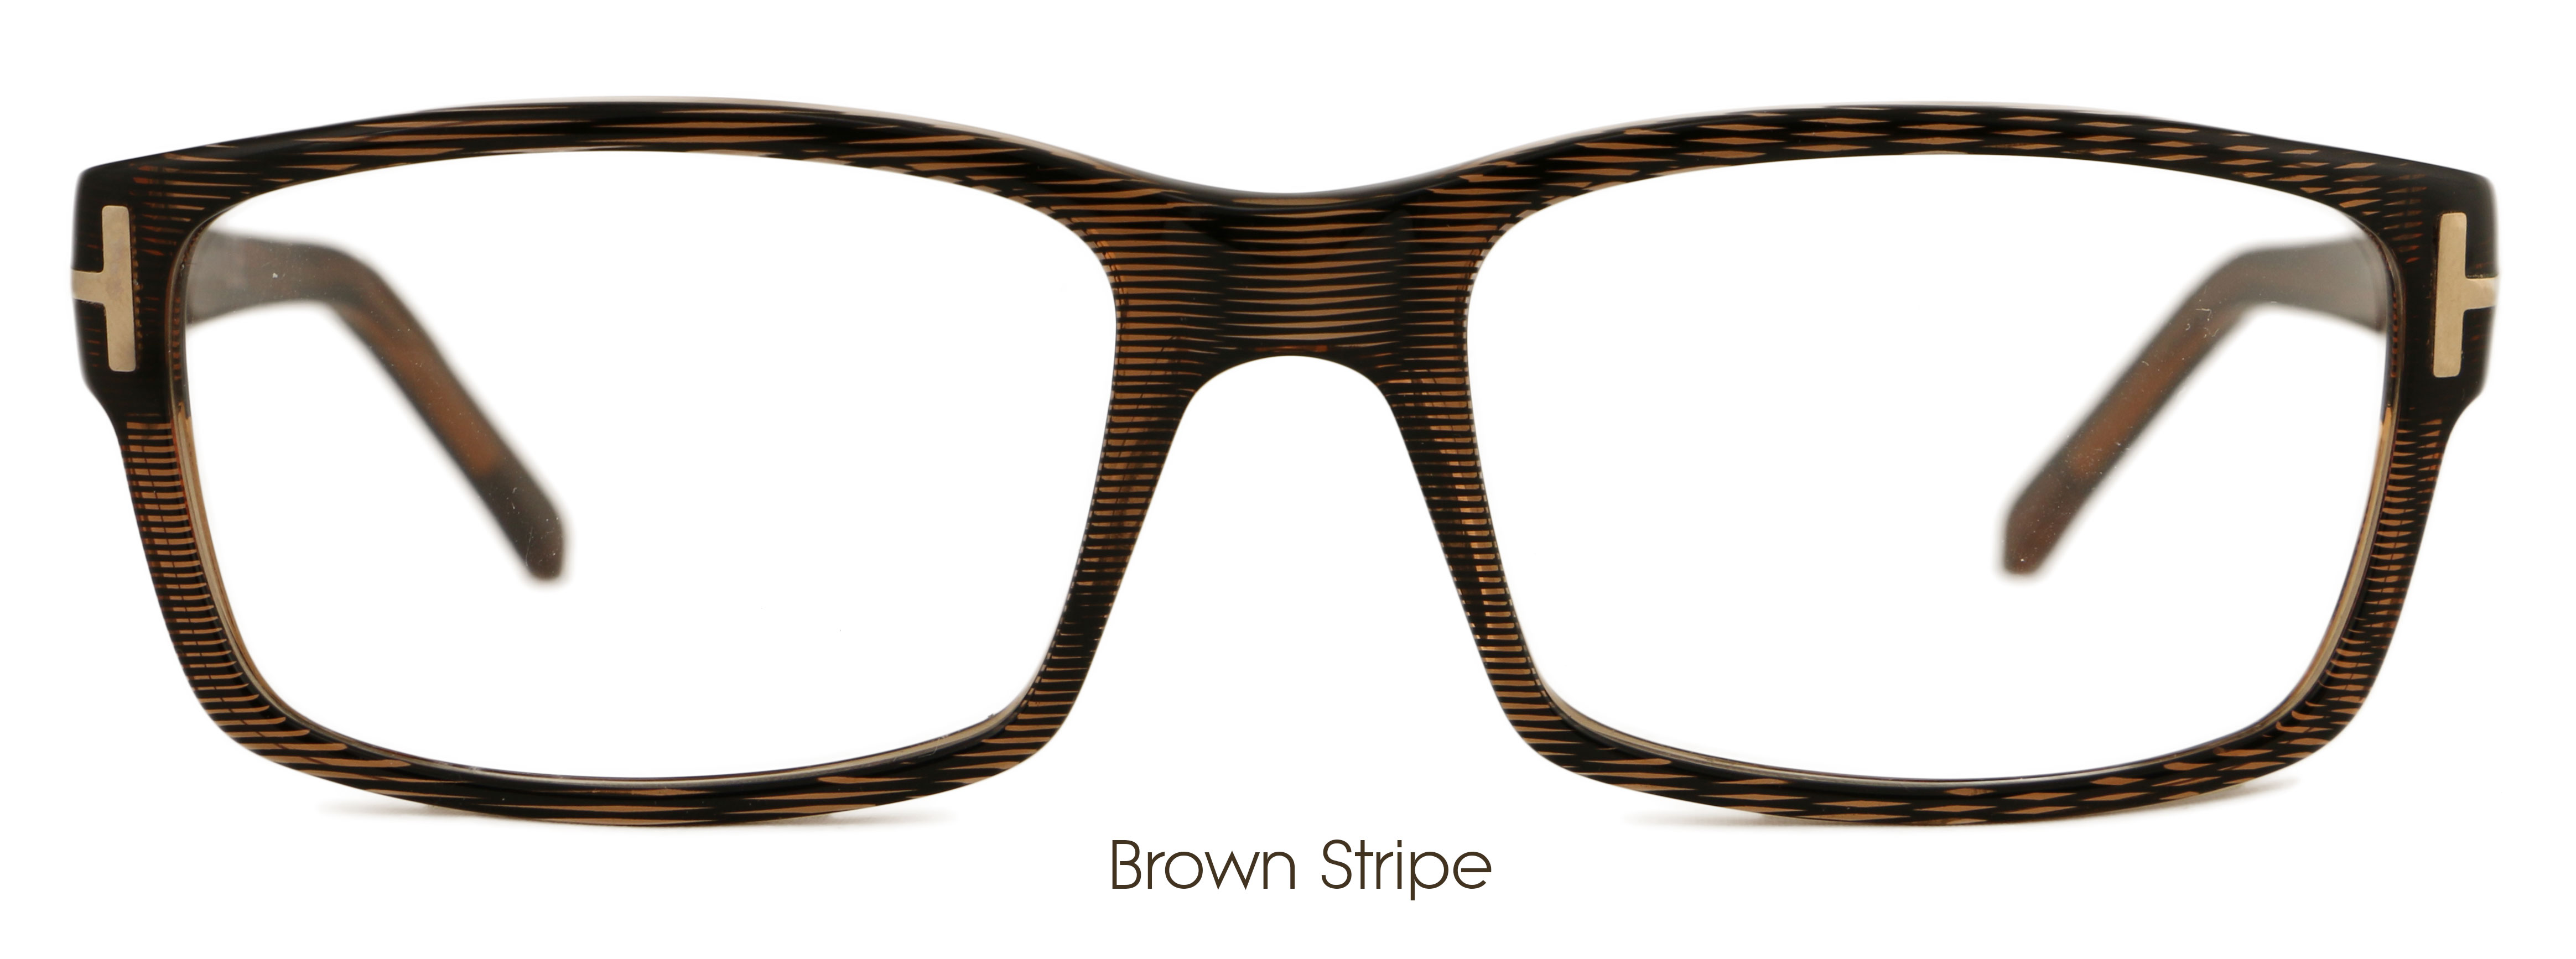 frame ford tom products pinterest eyeglasses pin